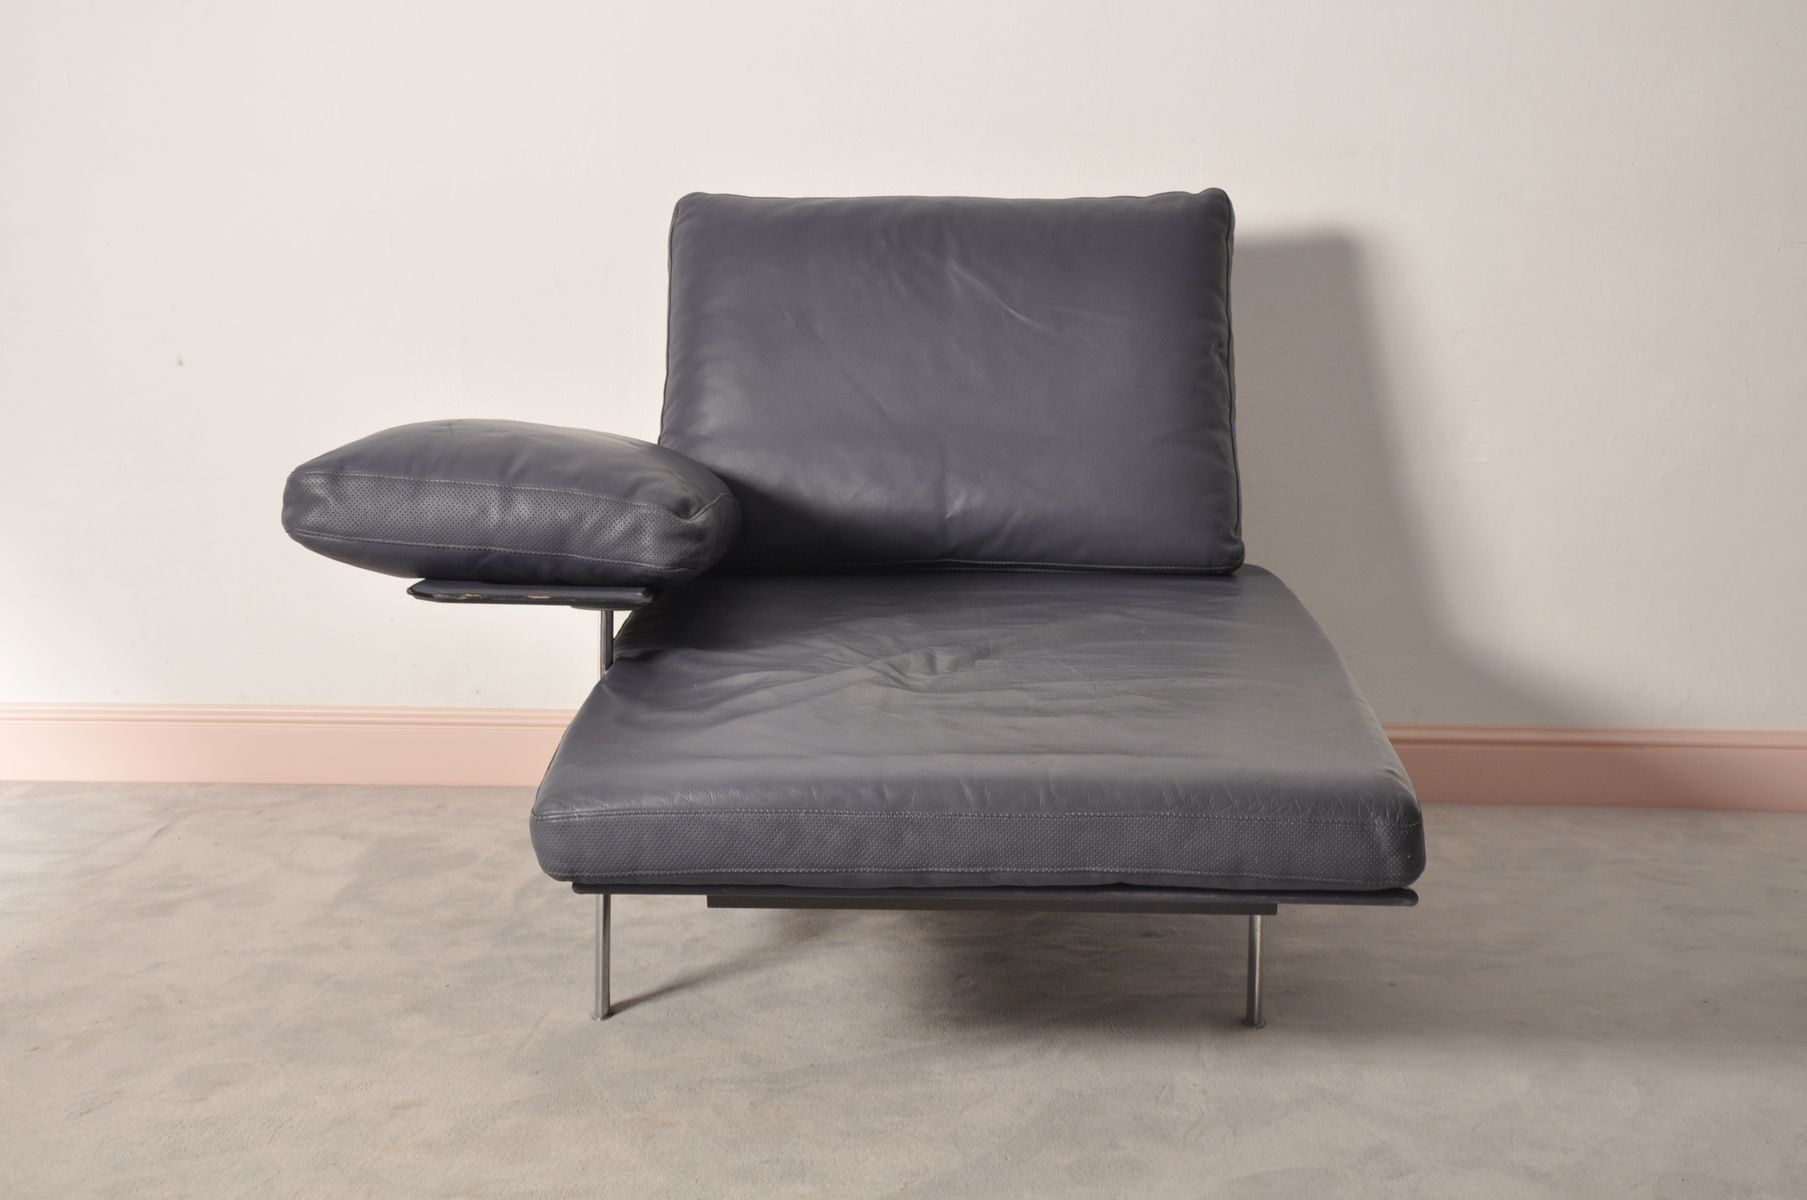 Diesis chaise longue by paolo nava antonio citterio for for Chaise longue for sale uk